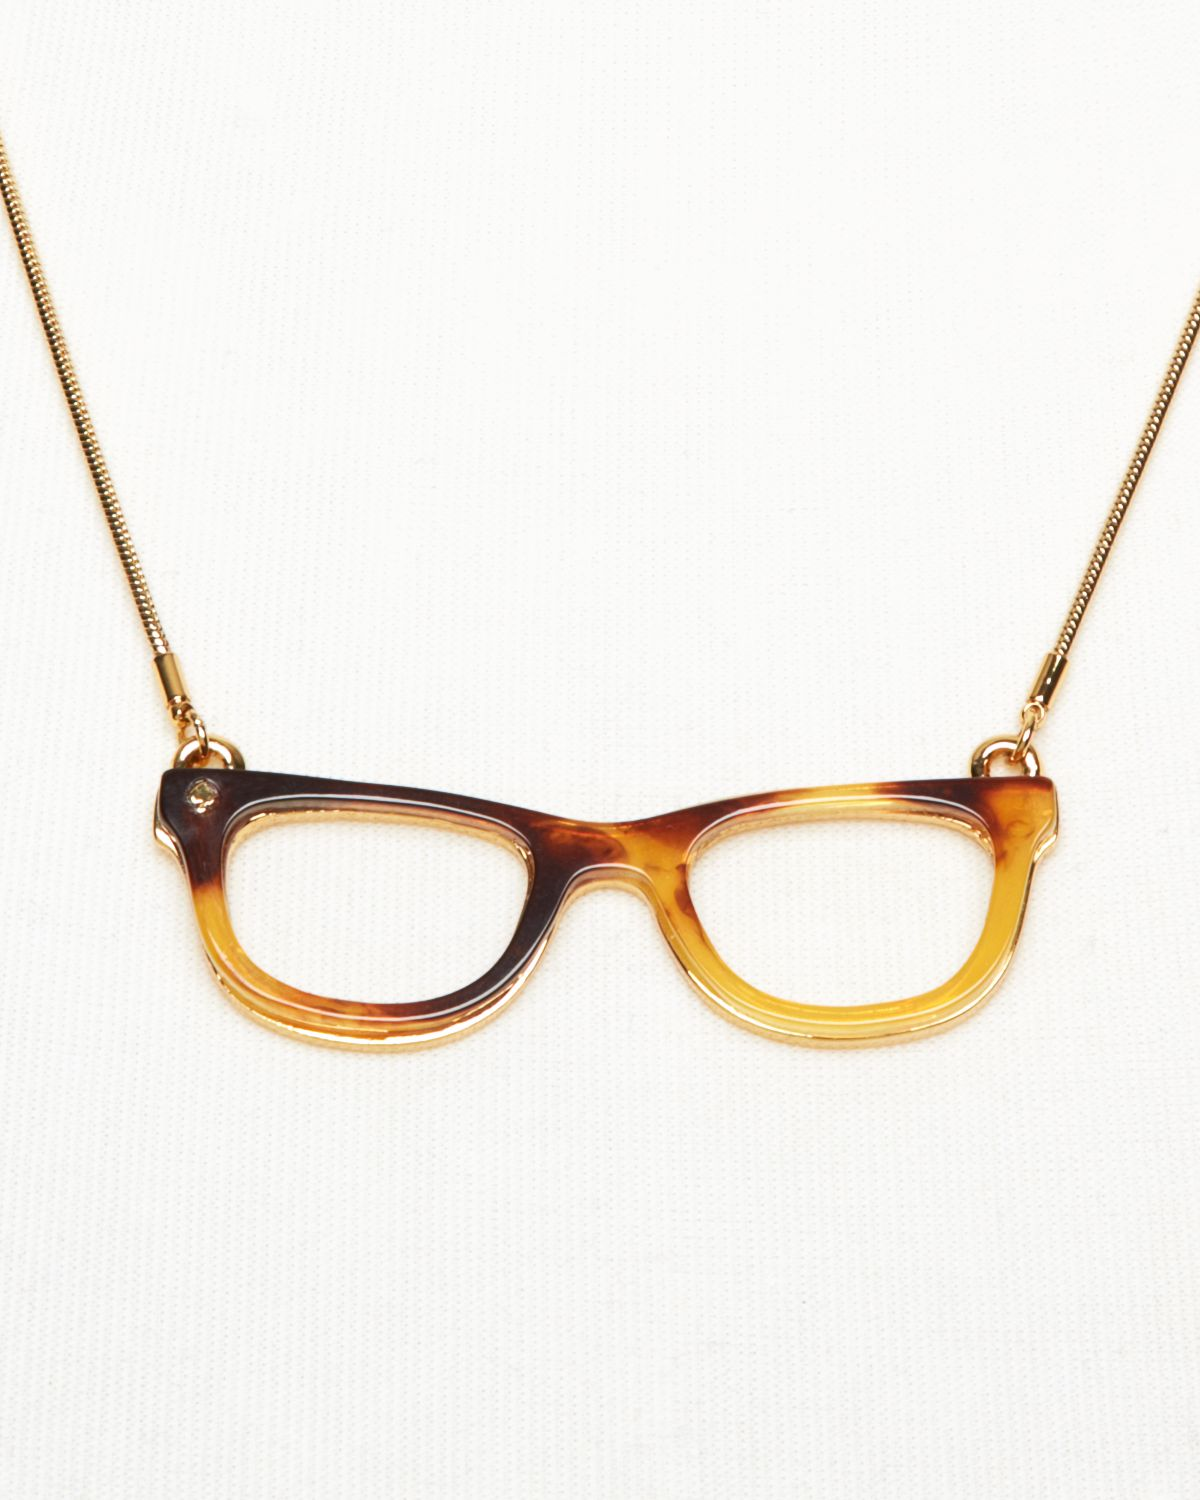 Kate Spade New York Goreski Glasses Pendant Necklace 18